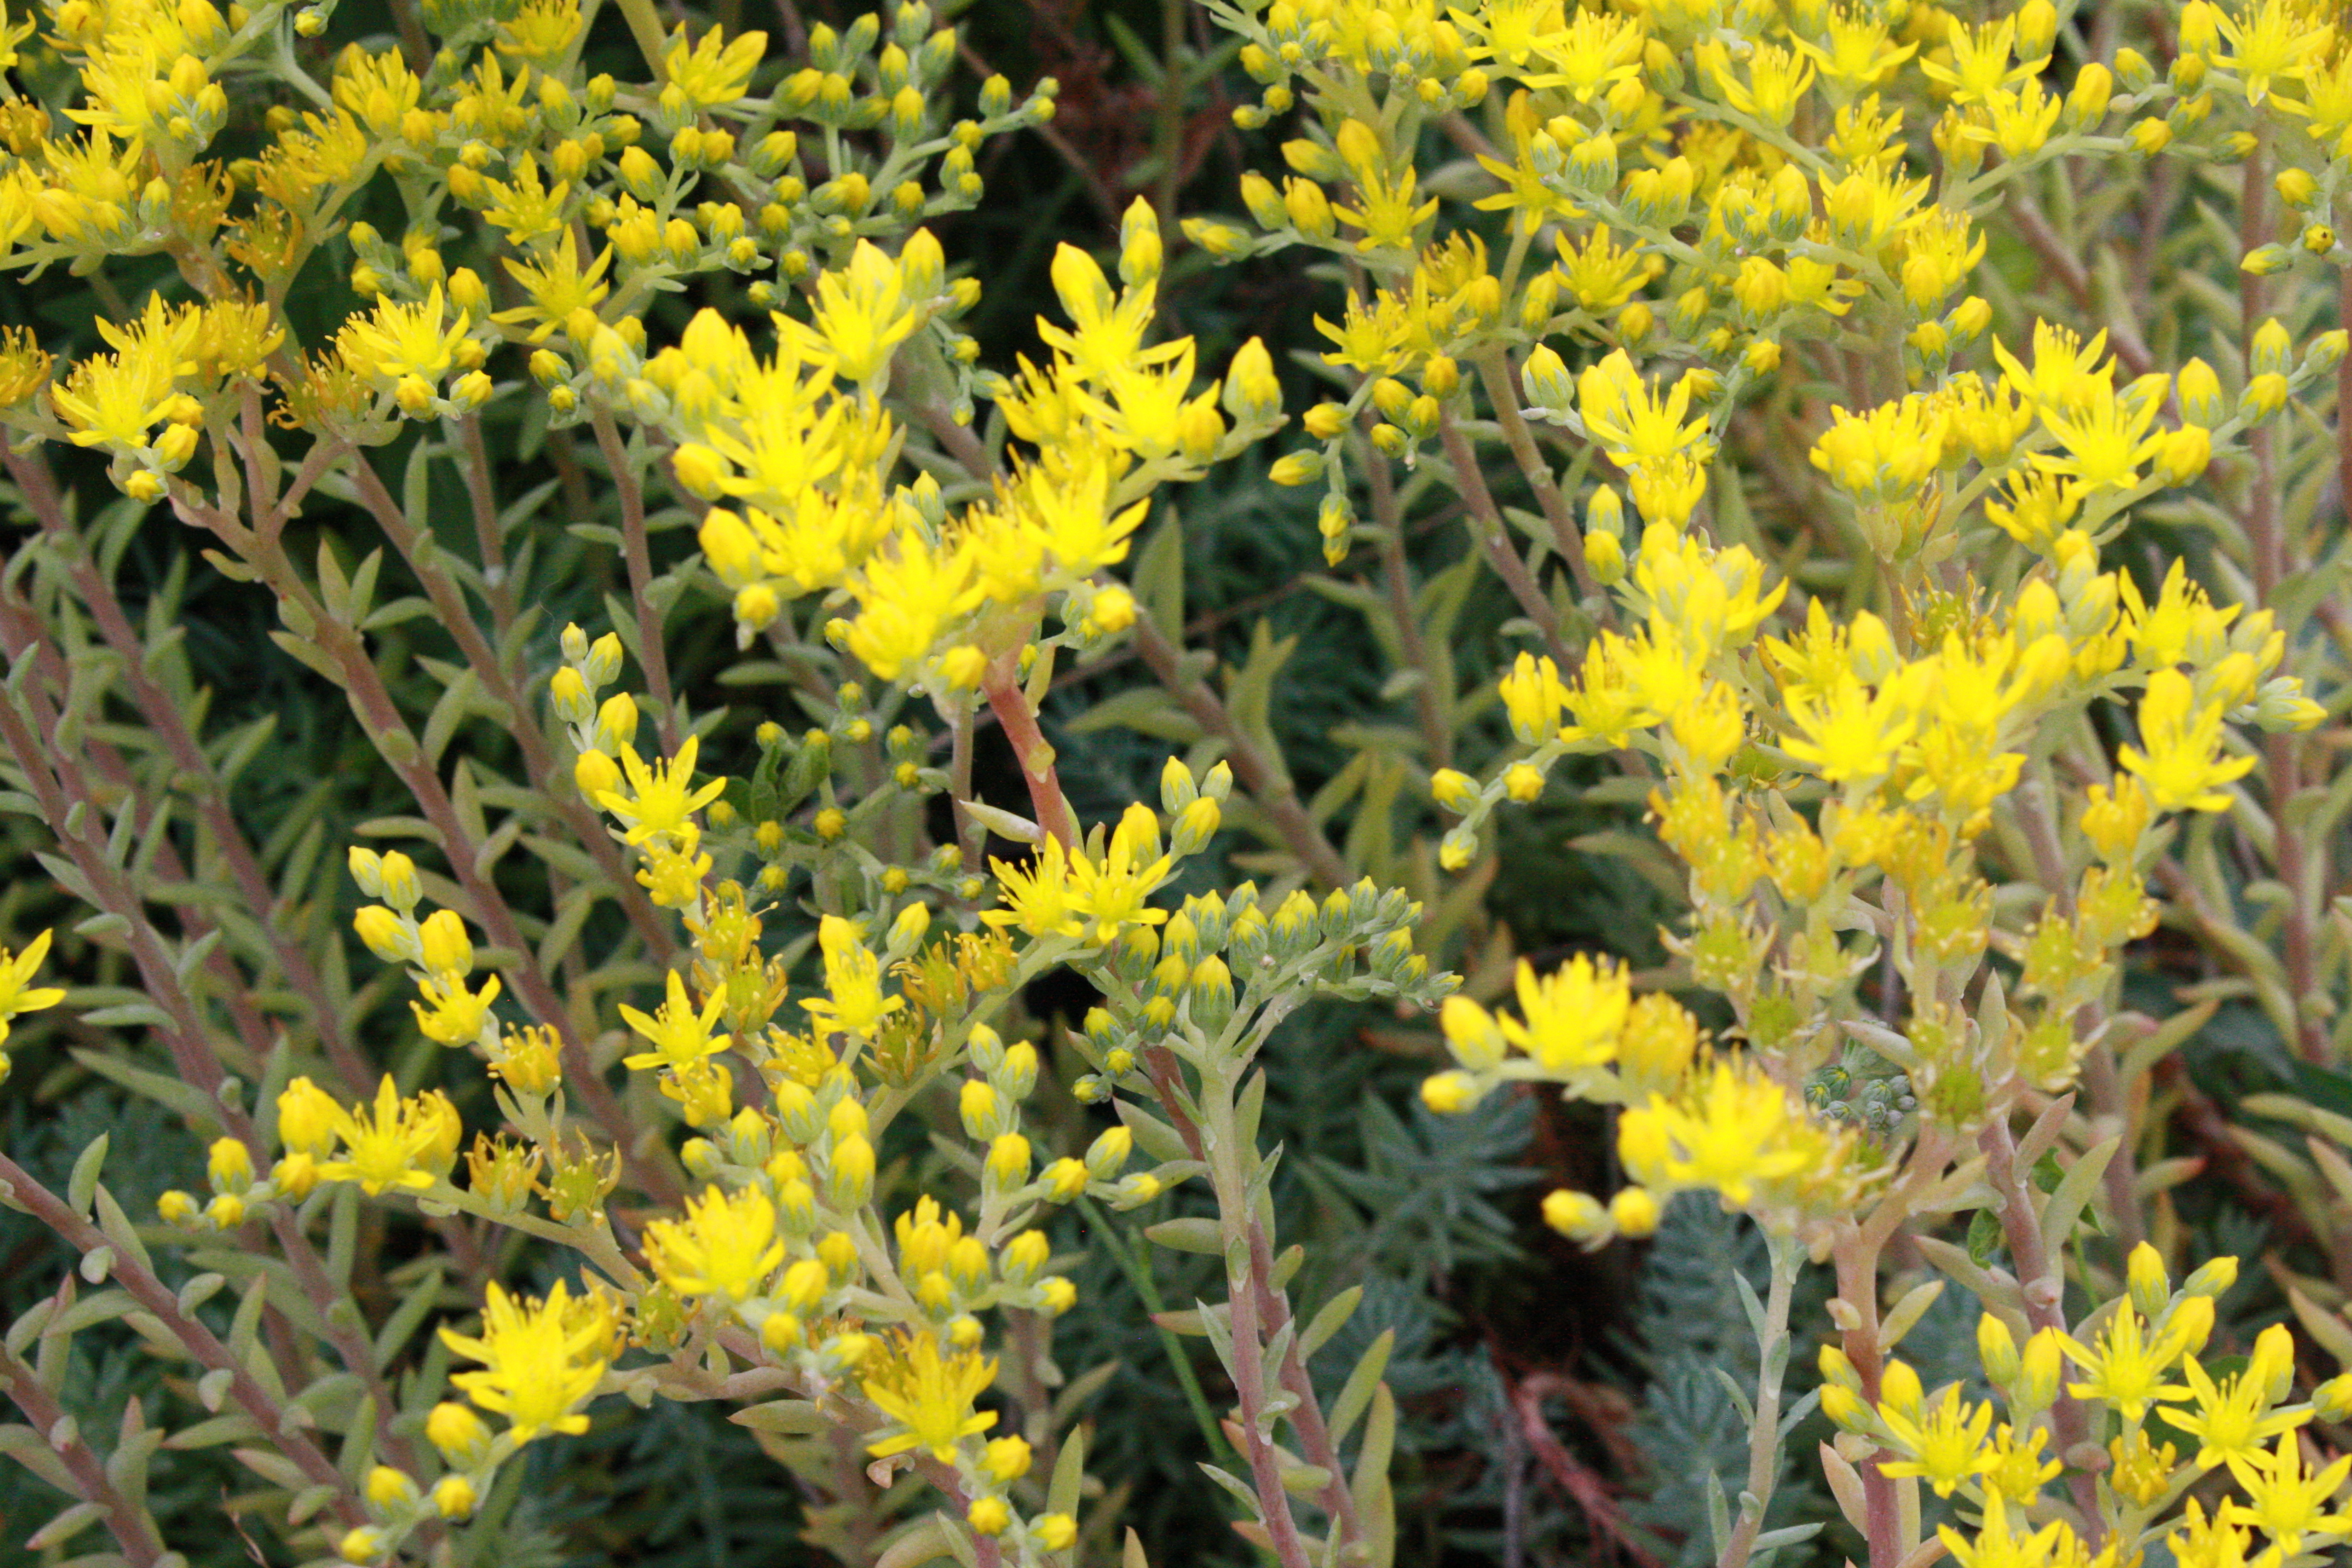 Yellow flowers on silver stone sedum picture free photograph click here to download full resolution image free high resolution photo of yellow flowers on silver stone sedum mightylinksfo Images